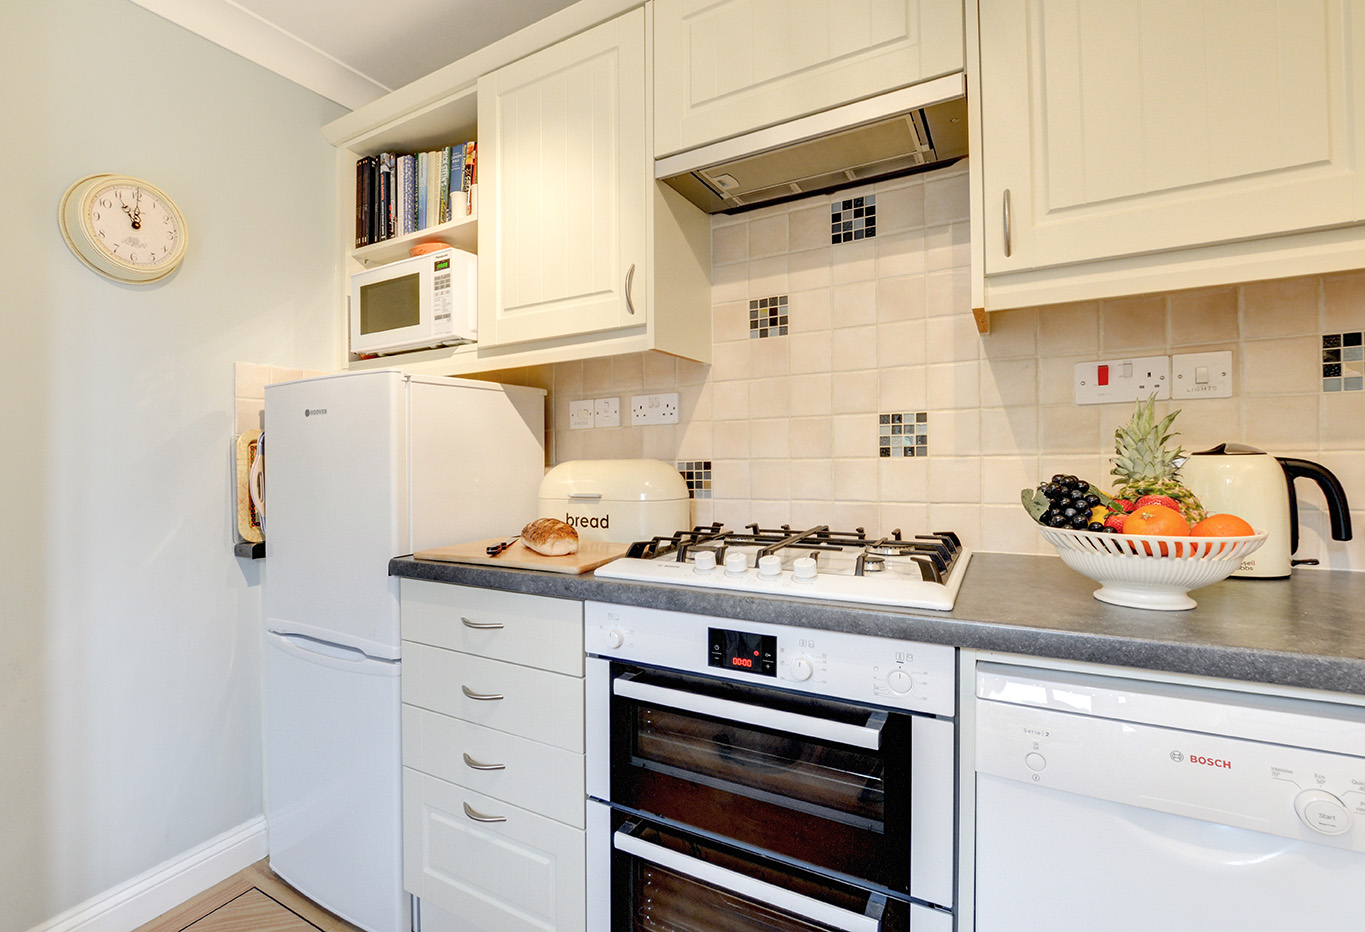 Ship Shape cosy holiday cottage in seaside harbour of Padstow kitchen 01.jpg